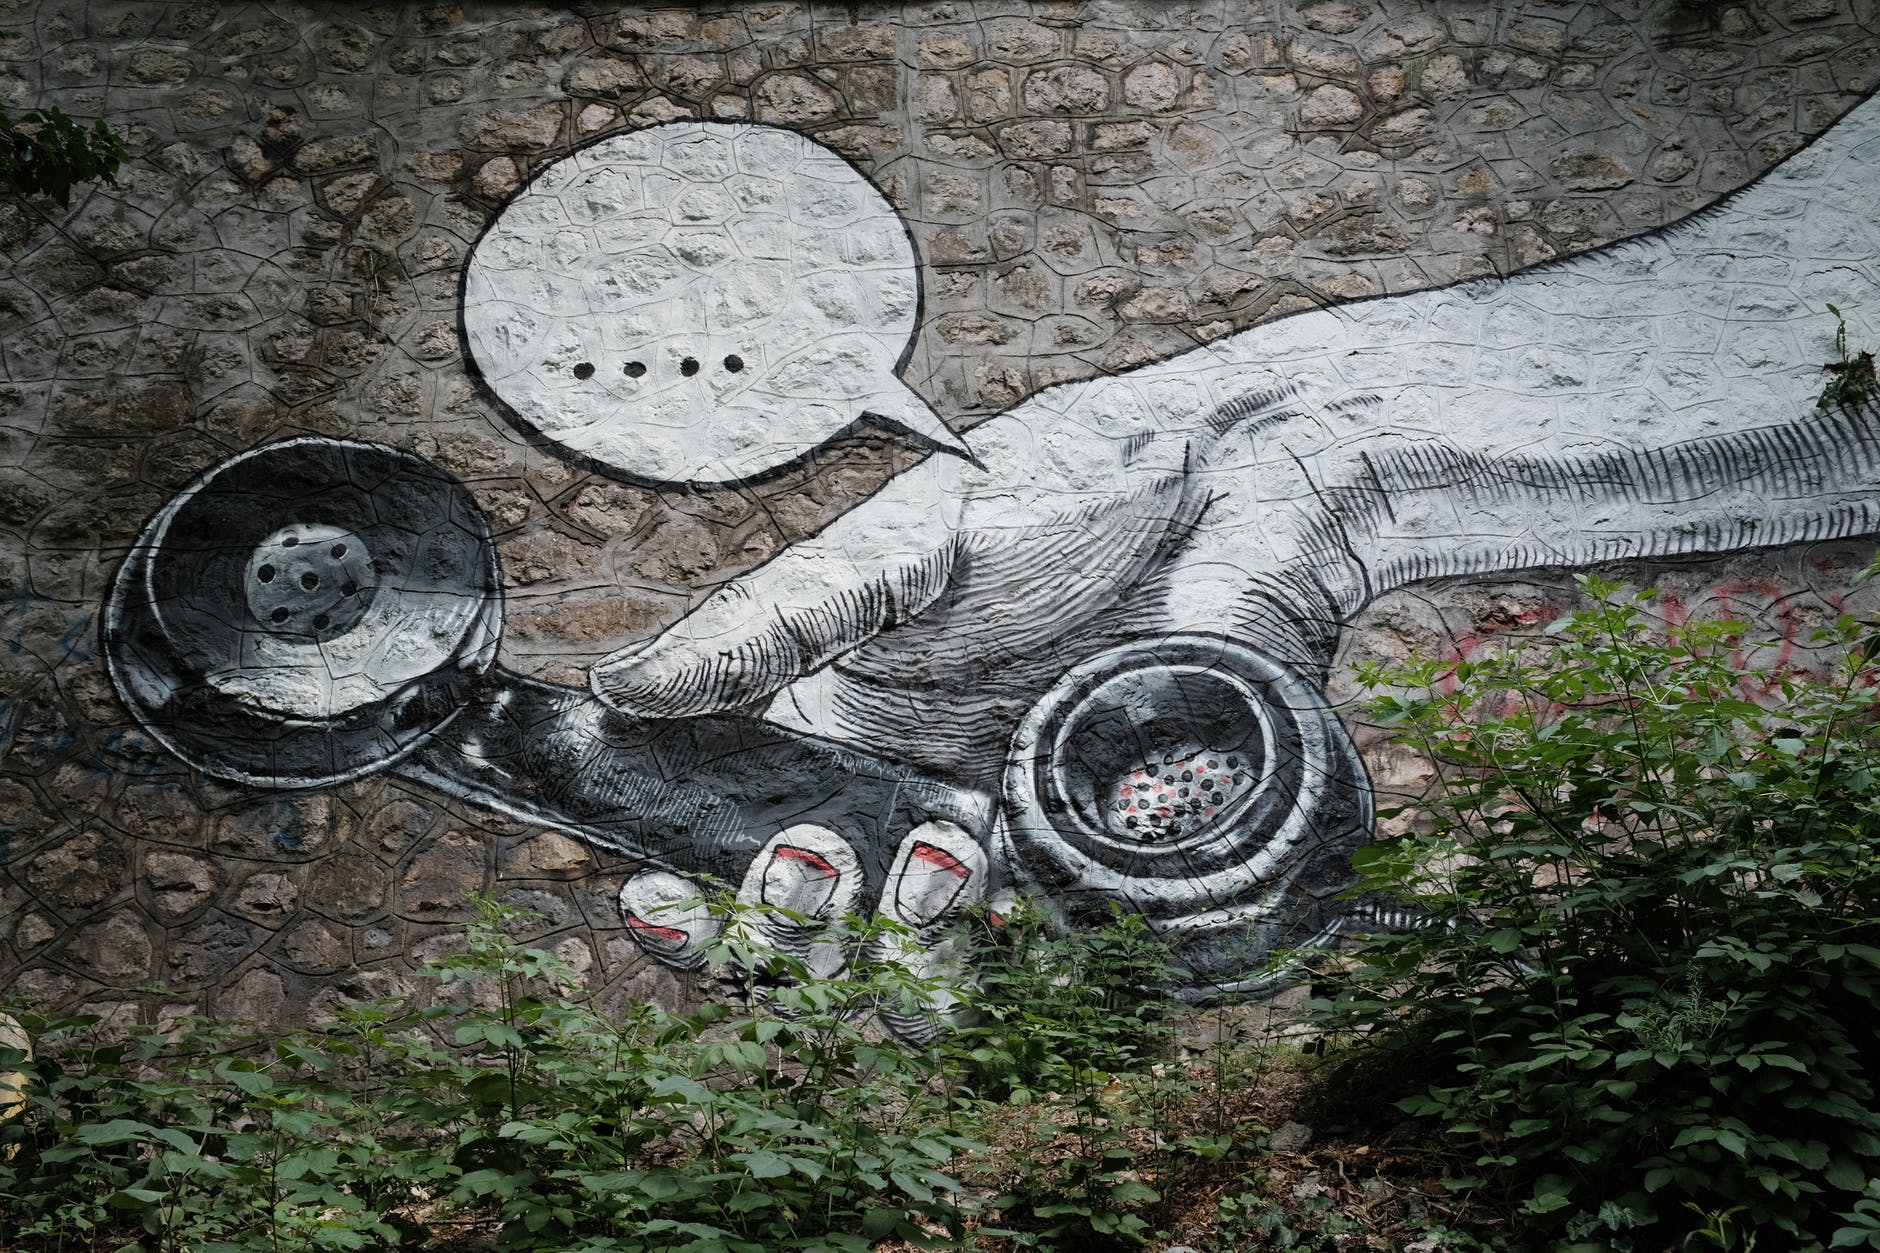 wall art graffiti of a hand holding out an old fashioned telephone receiver